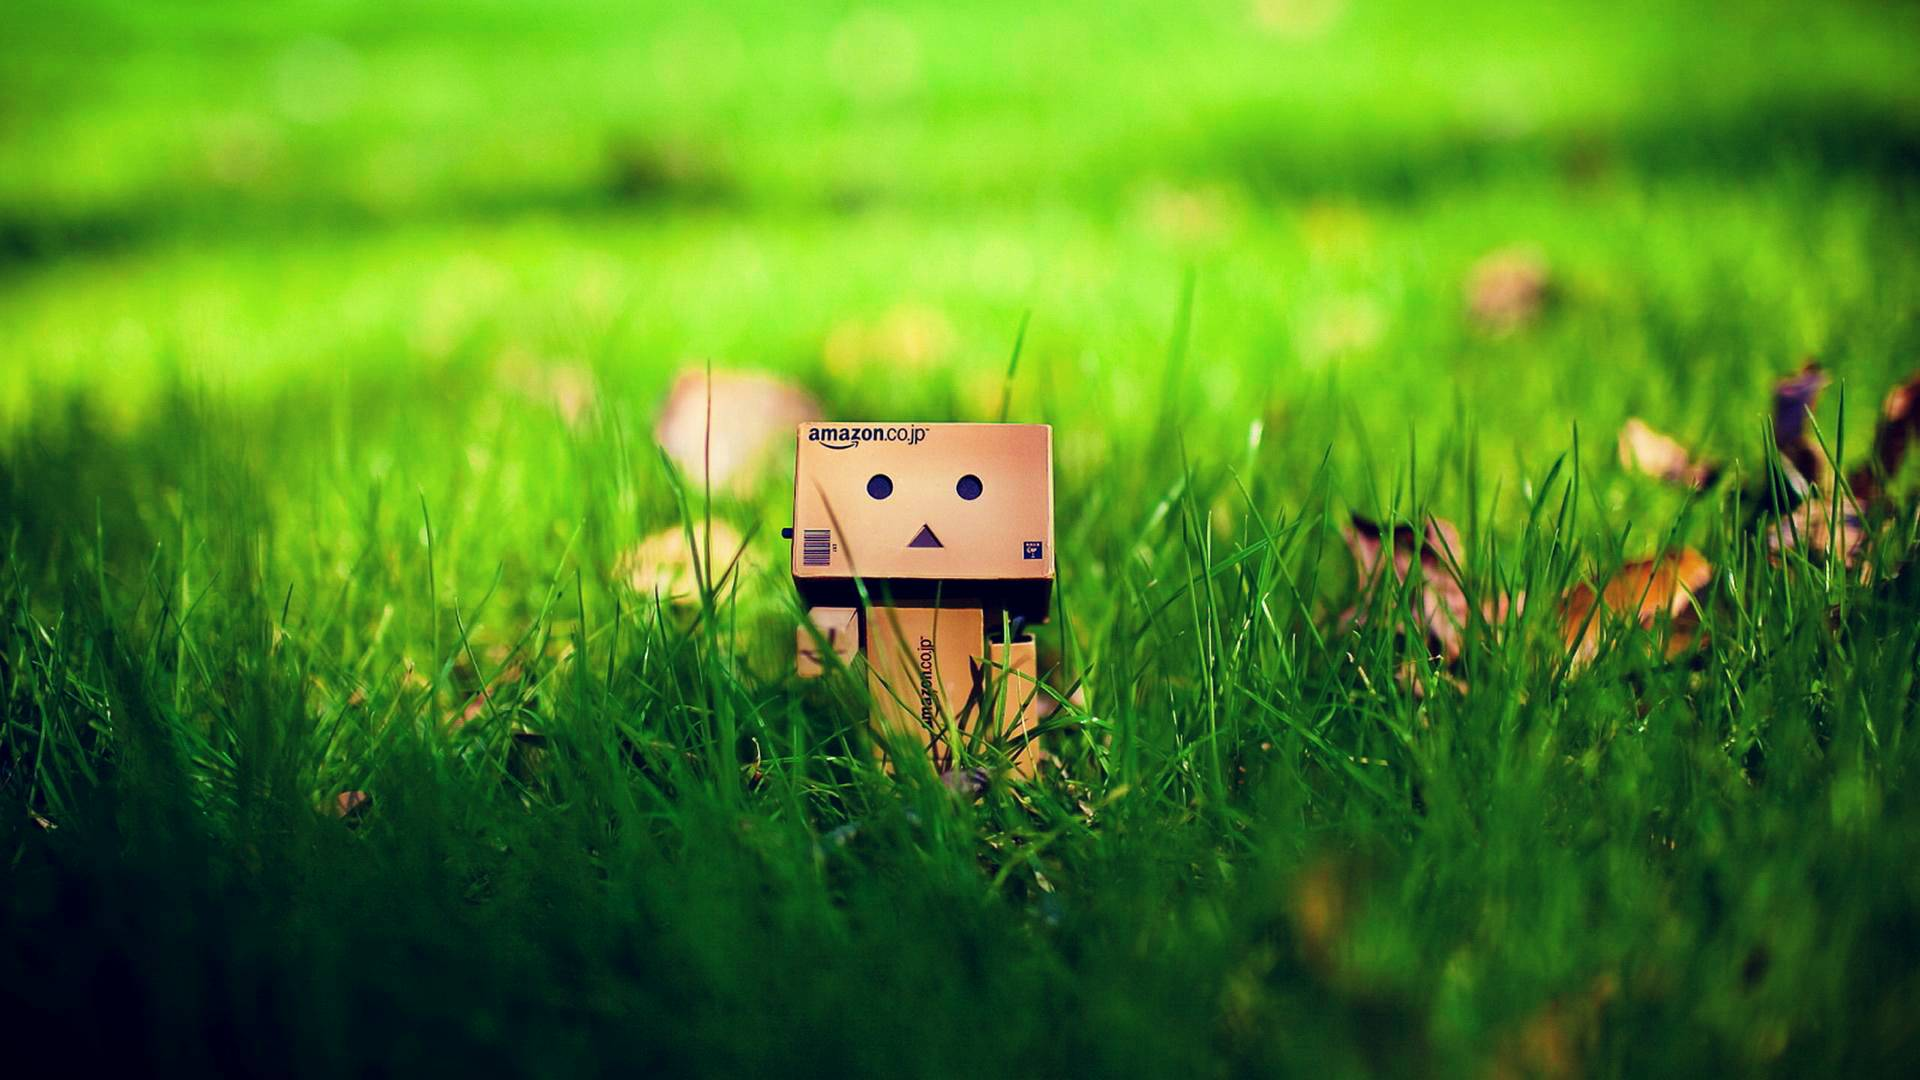 On The Grass Danbo Bokeh Wallpaper